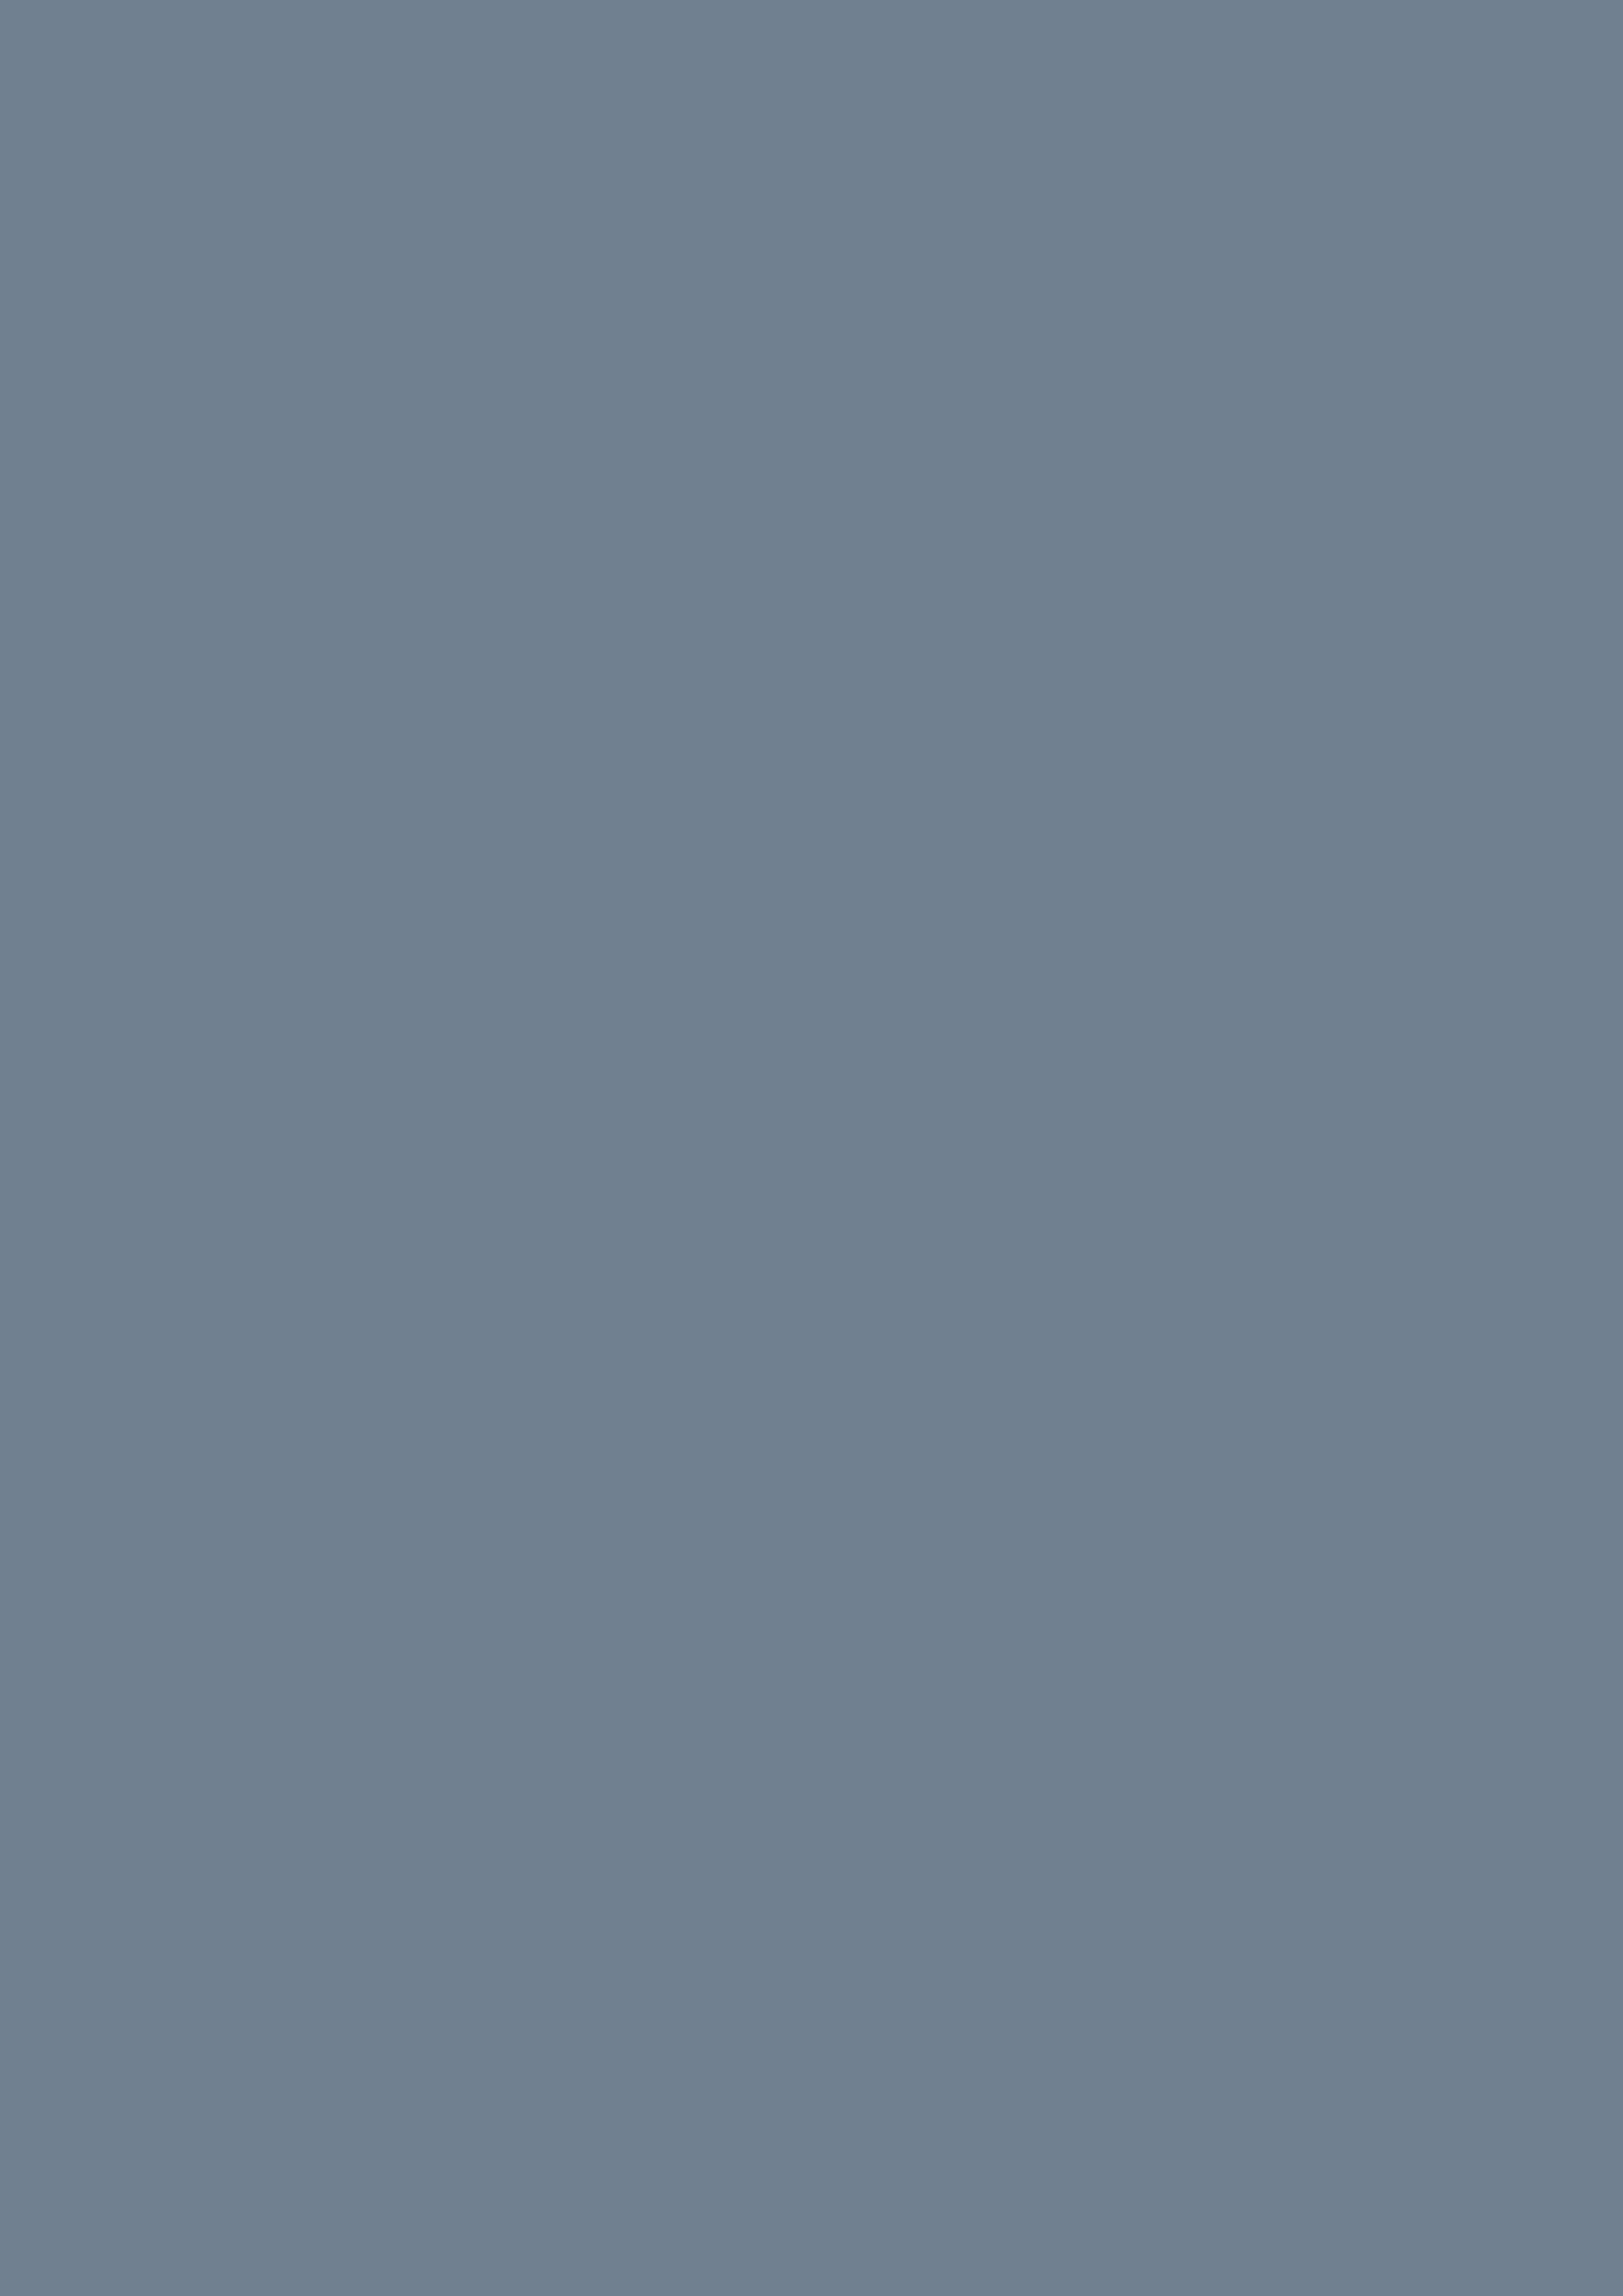 2480x3508 Slate Gray Solid Color Background